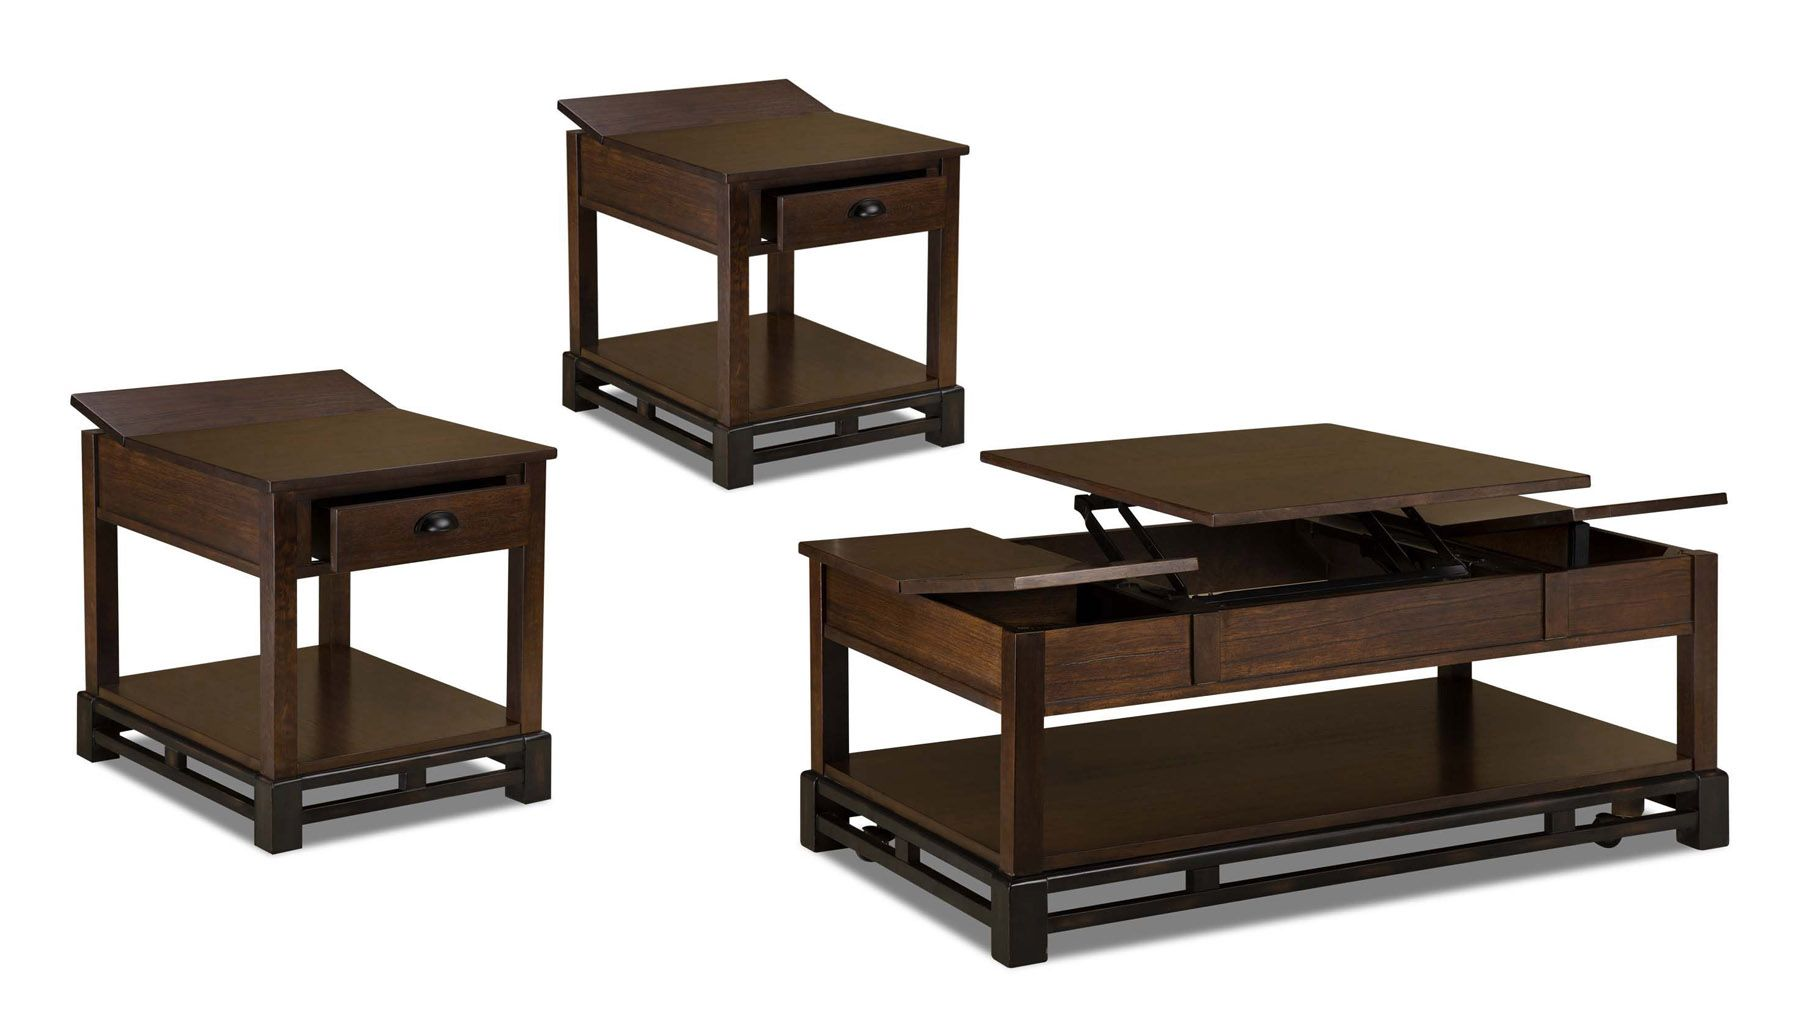 Lift Top Coffee Table With Storage Catnapper Lift Top Storage Coffee Table And 2 End Tables 870 Coffee Table With Storage Coffee Table Lift Top Coffee Table [ 1031 x 1800 Pixel ]